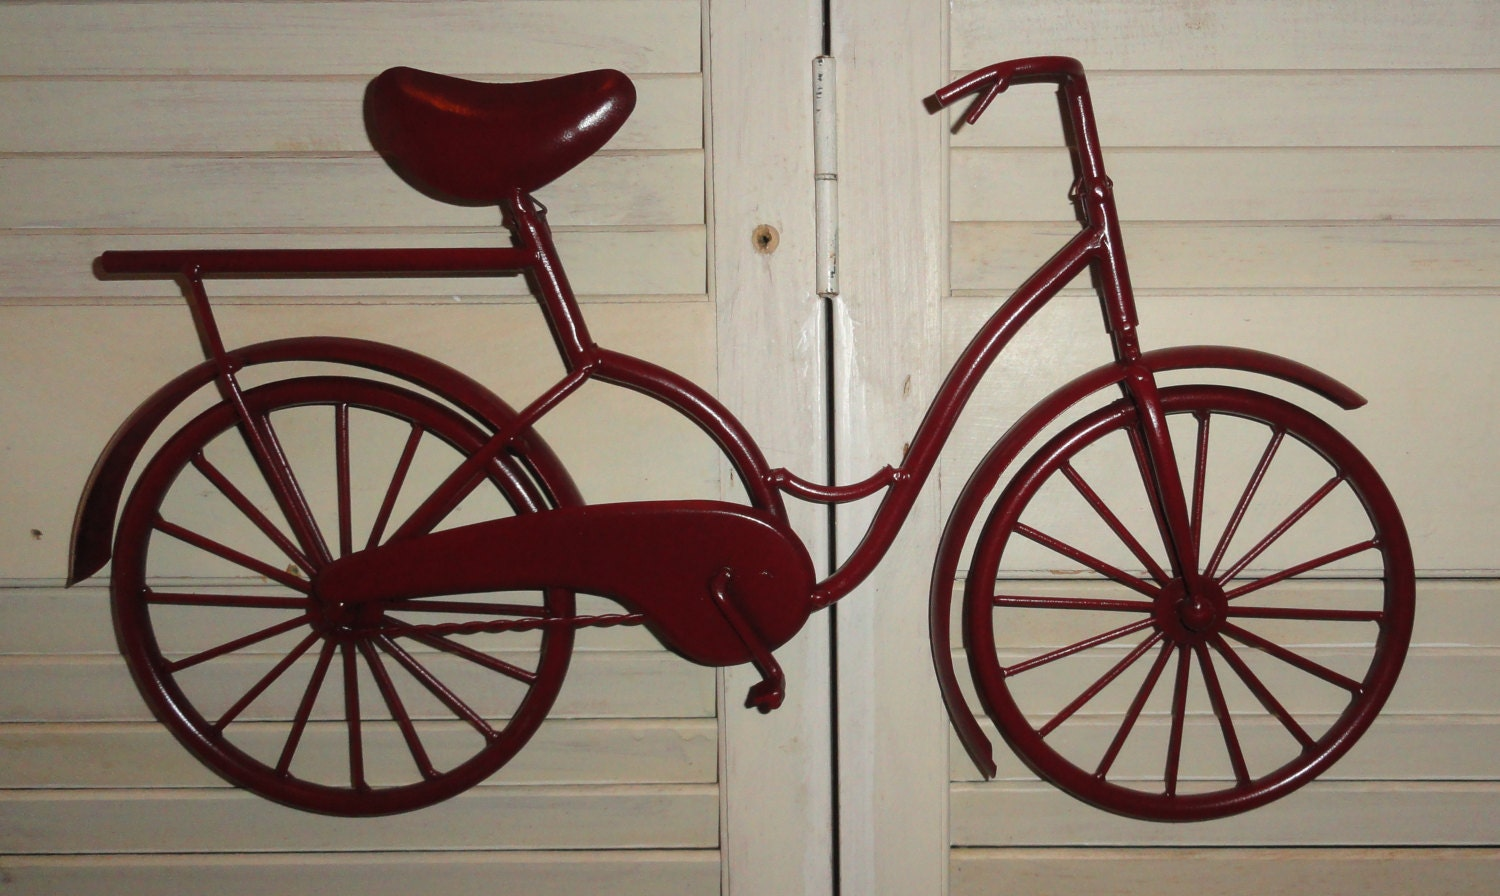 Metal Wall Decor Bicycle : Bicycle wall art metal decor by